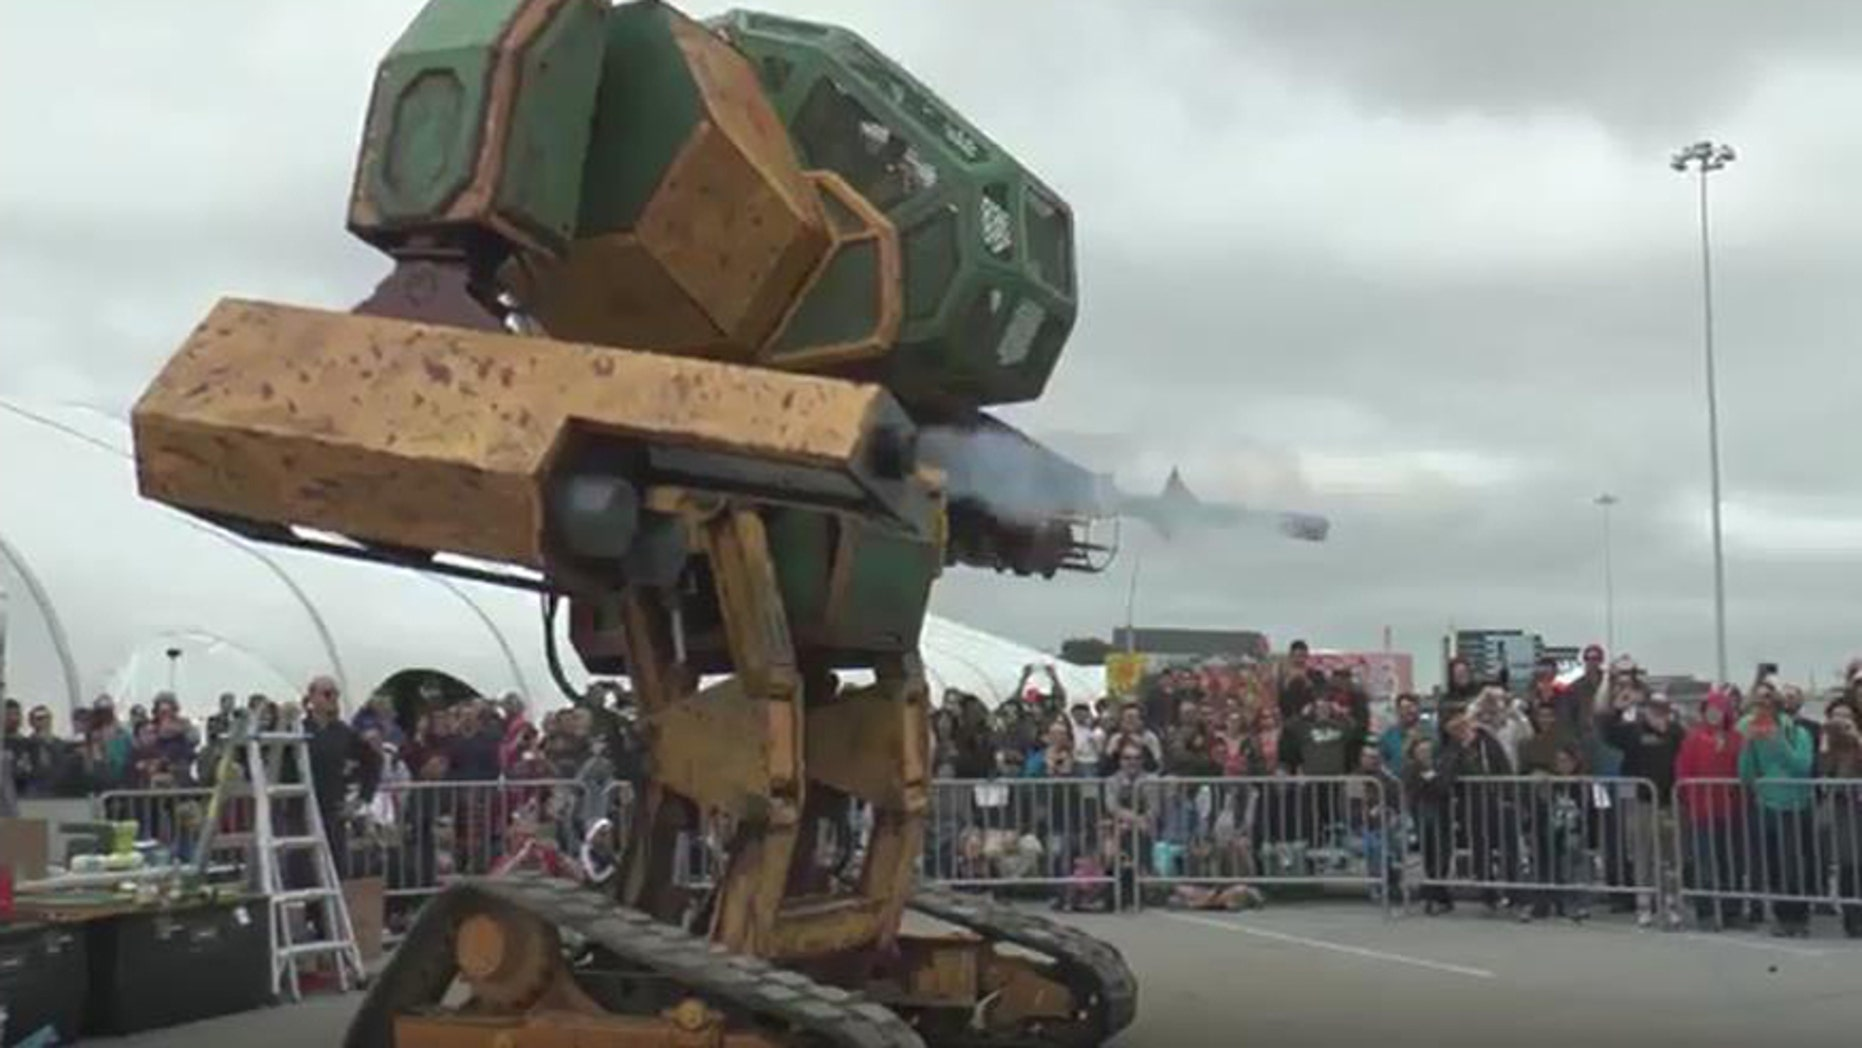 (Screenshot from MegaBots YouTube video)